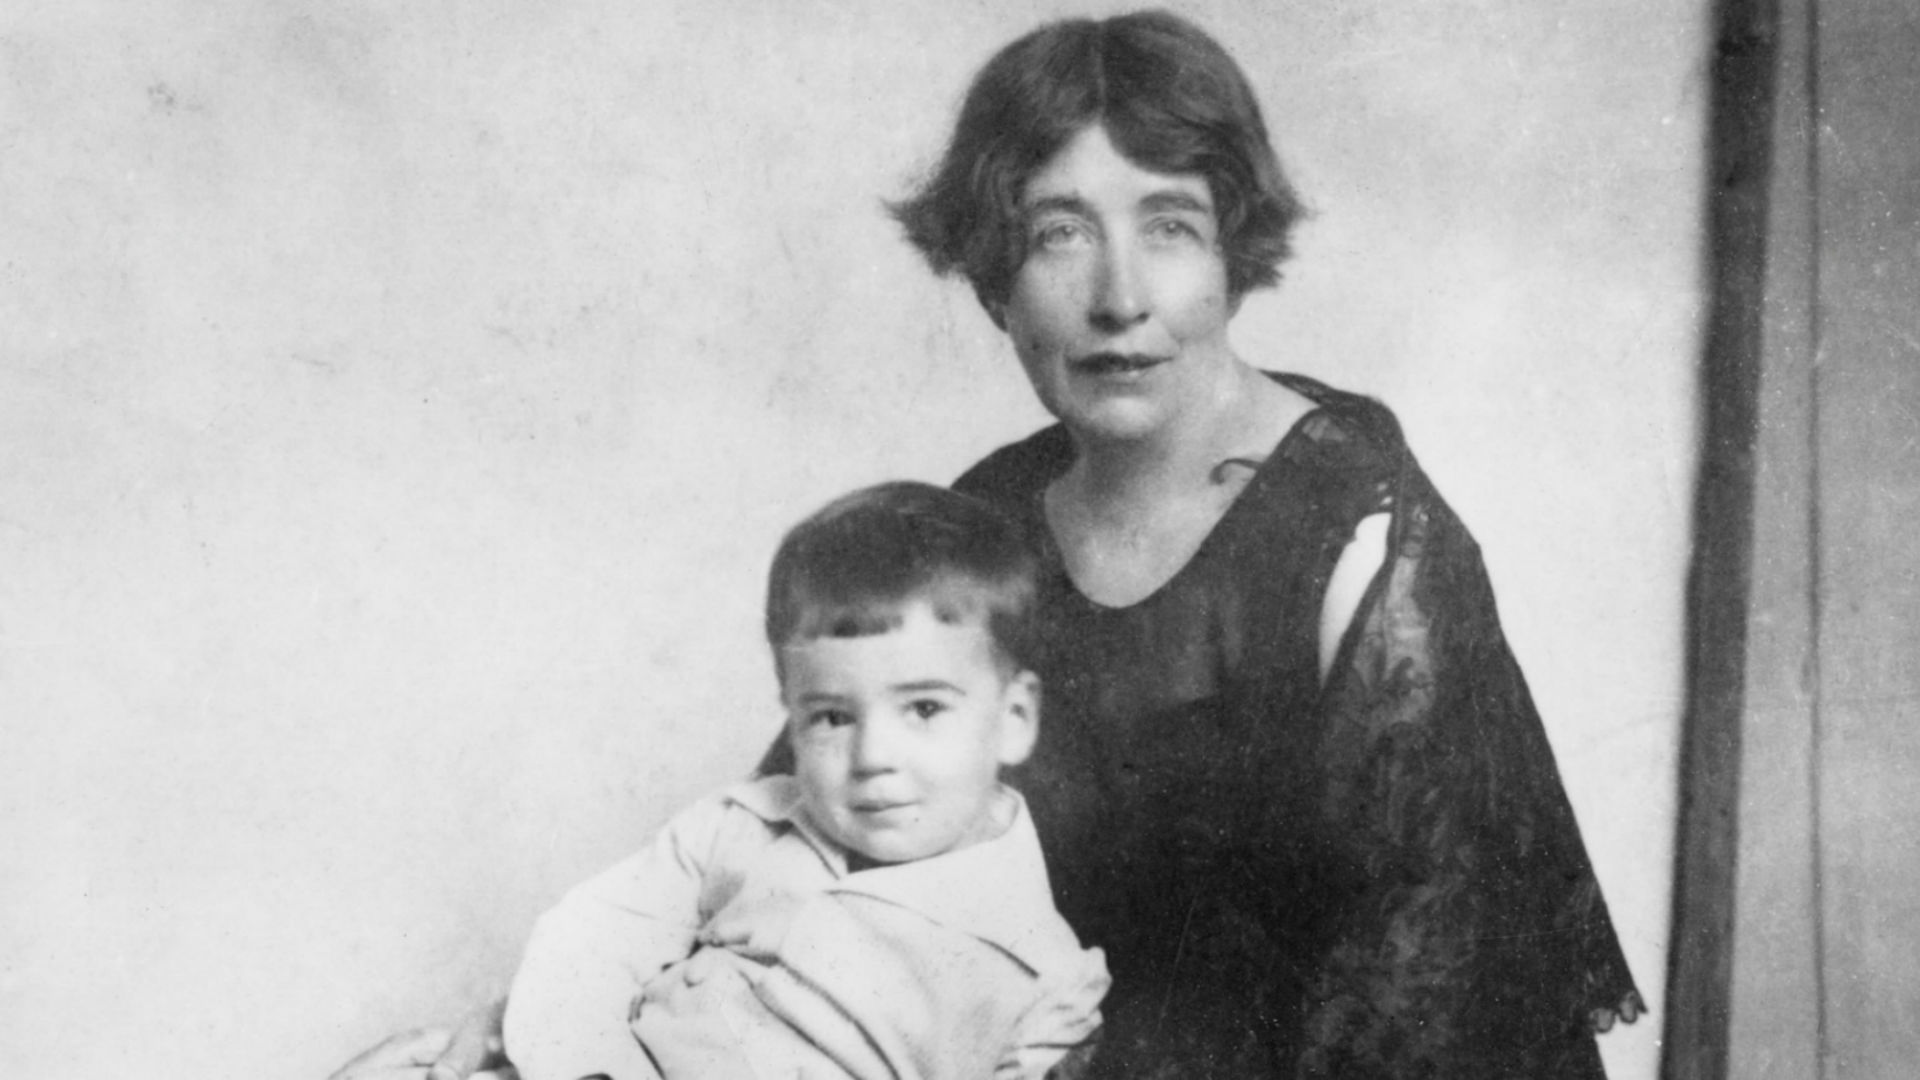 Photograph of Sylvia Pankhurst with a small child